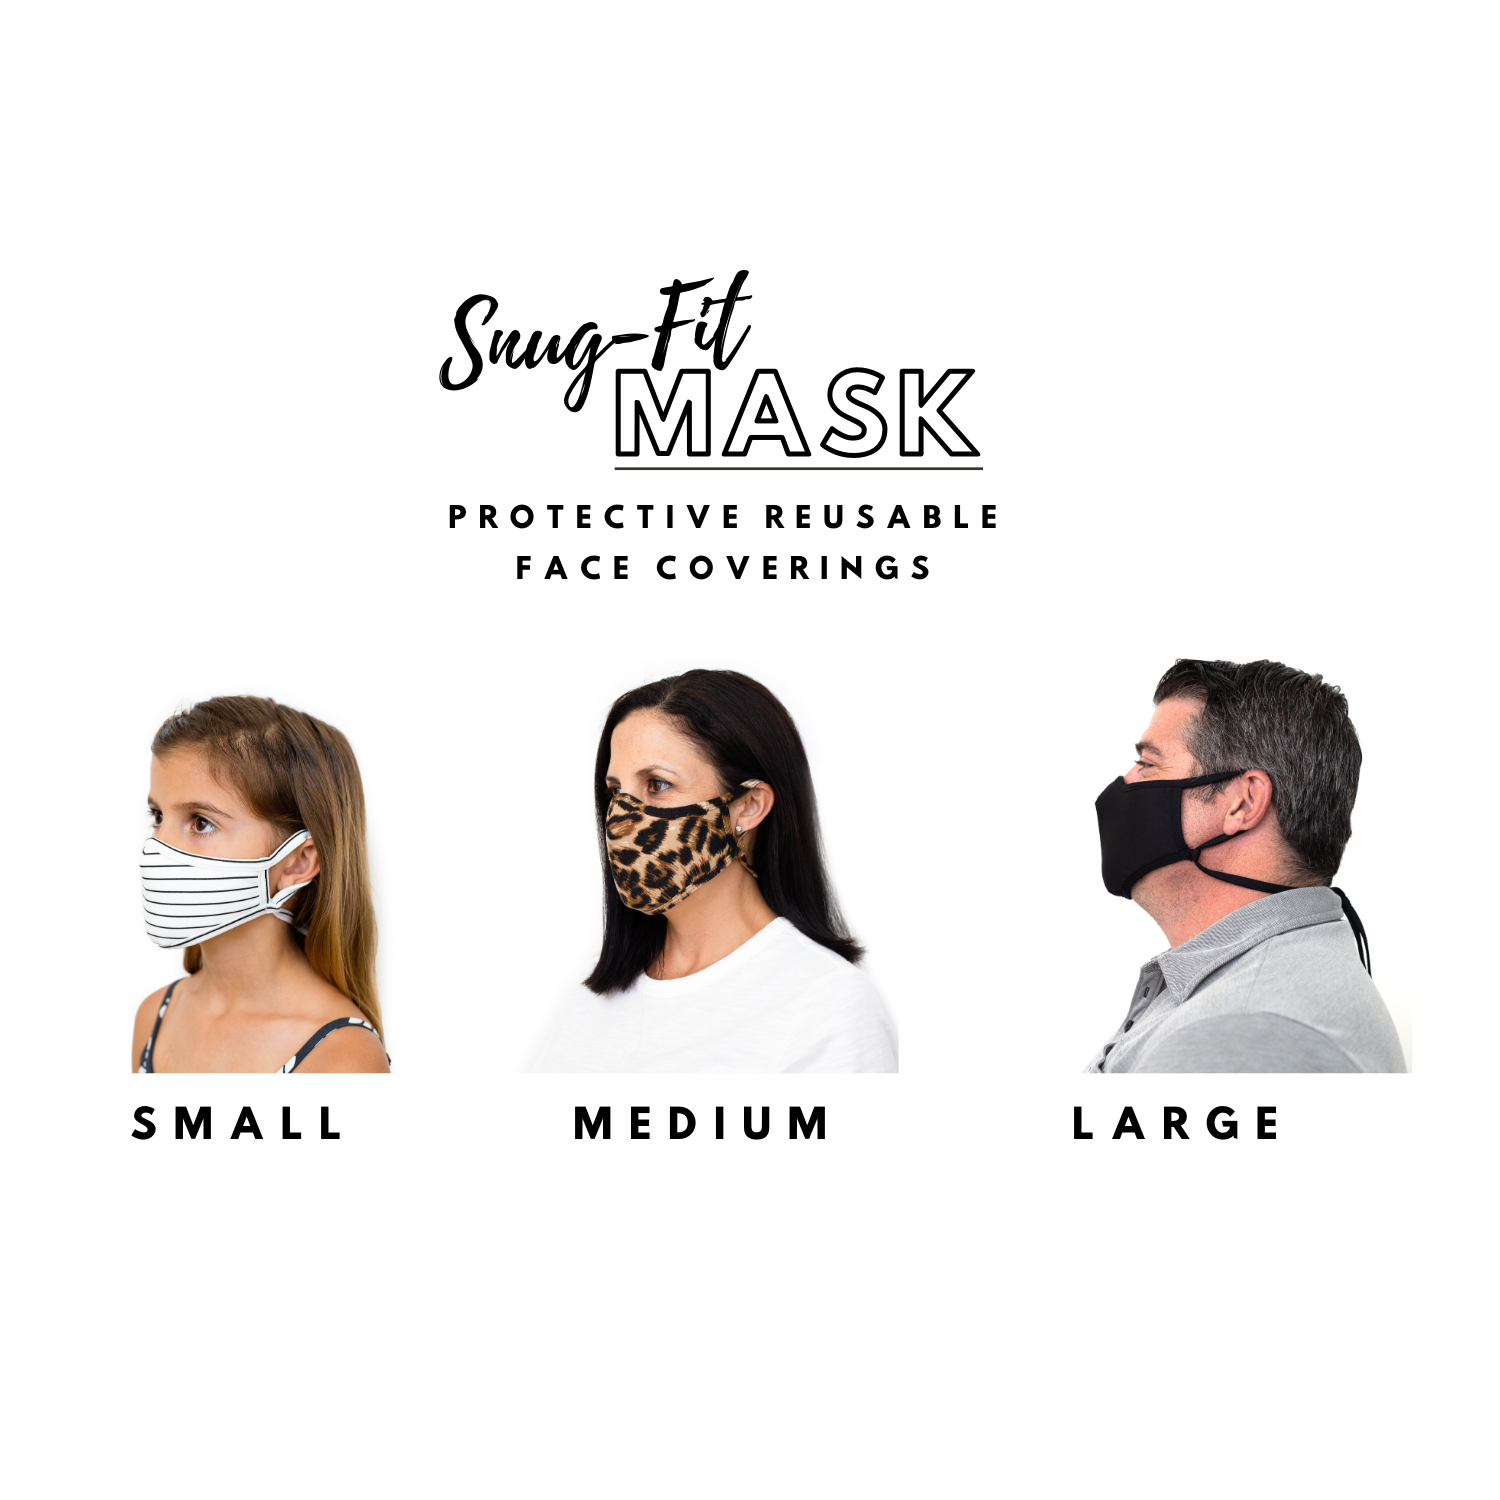 How to Measure your Snug-Fit Mask Size at Home